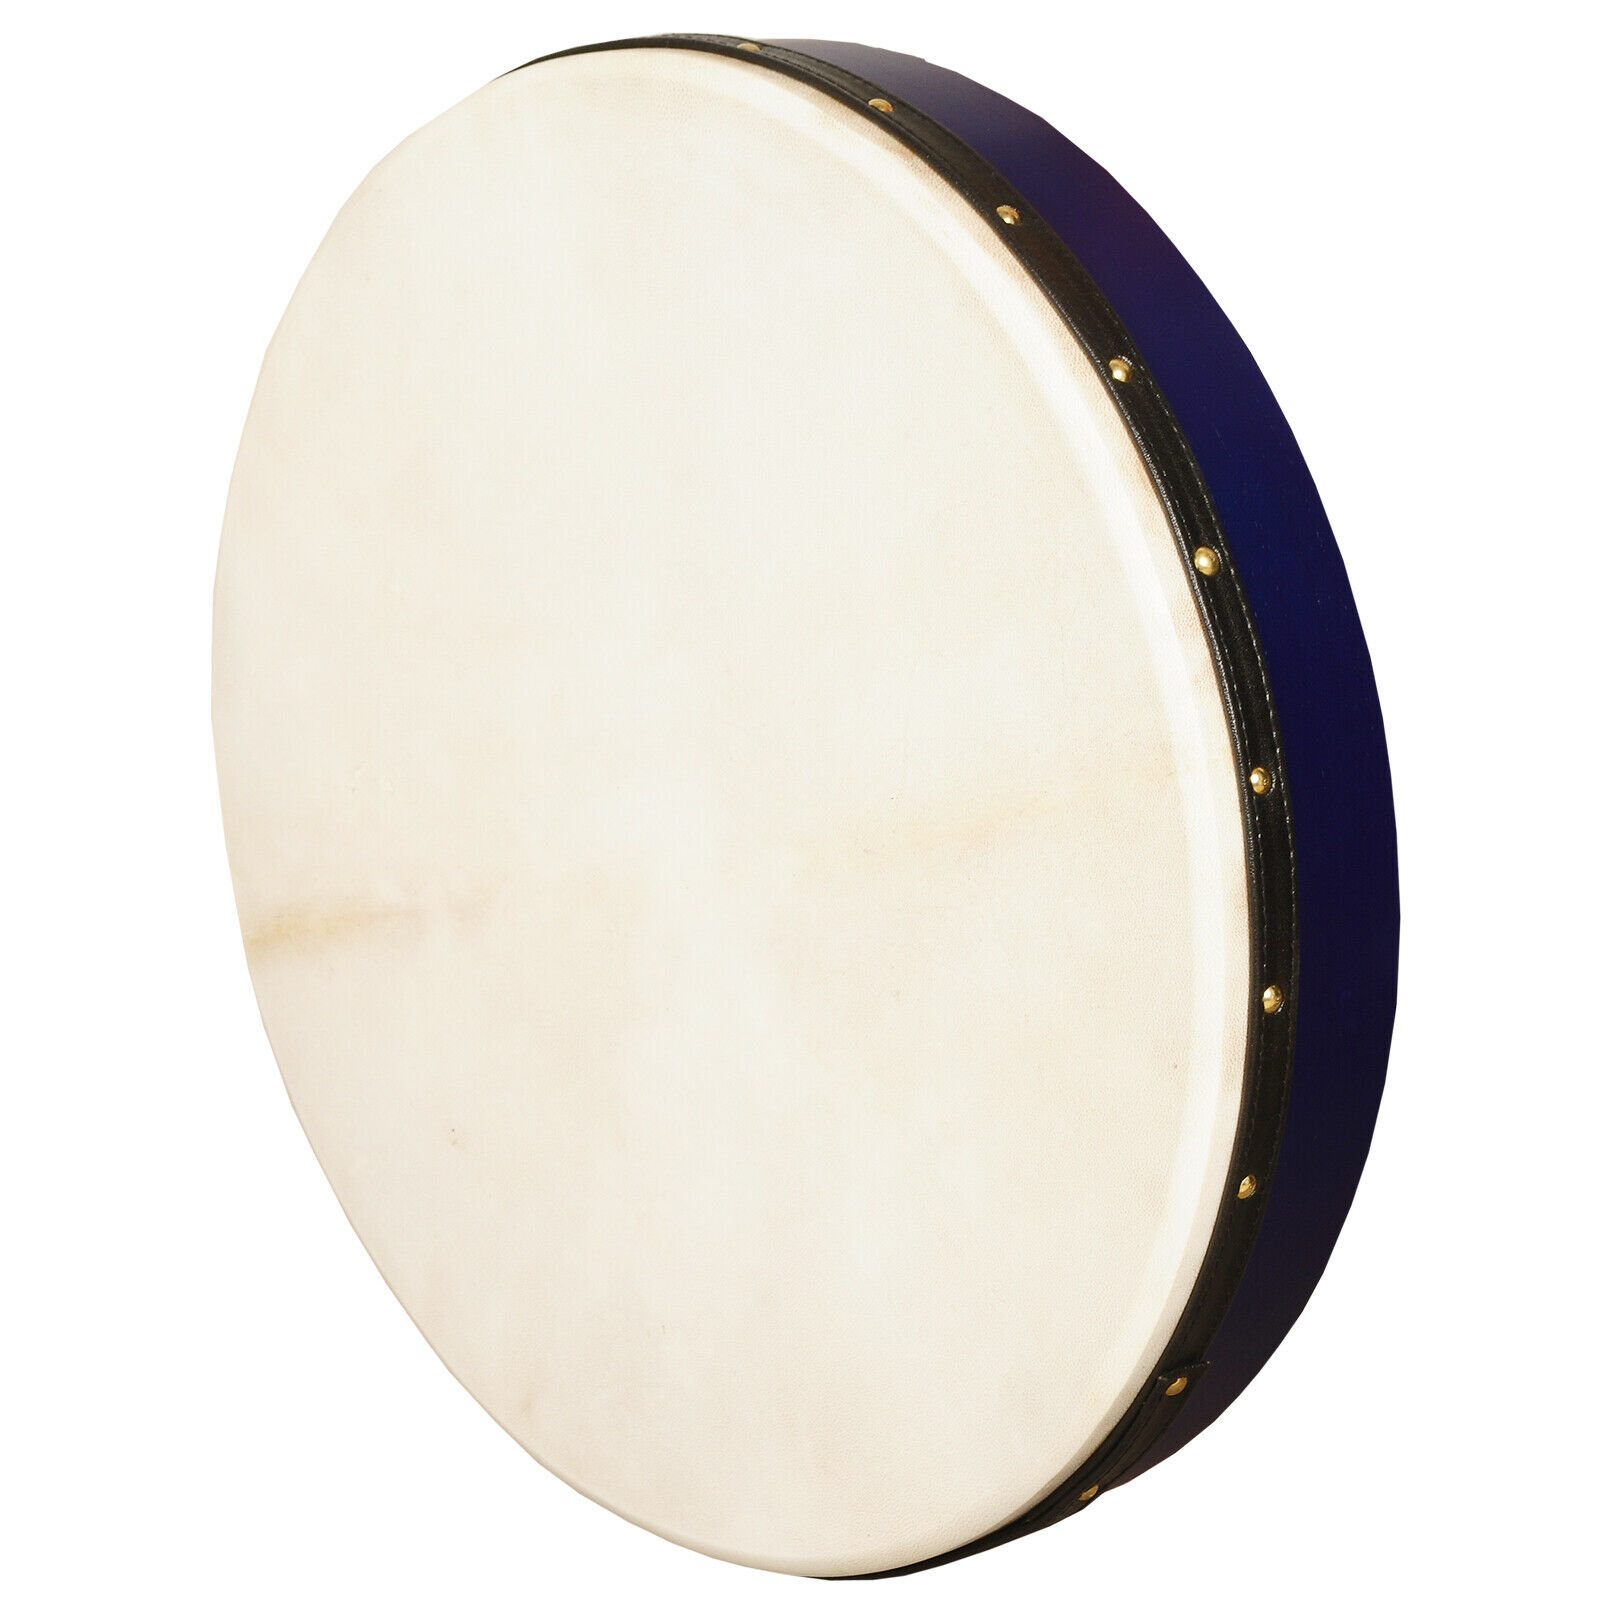 Muzikkon irish bodhran 18  X3 Fixed Head Pretuned Bodhran Blau Cross Stick